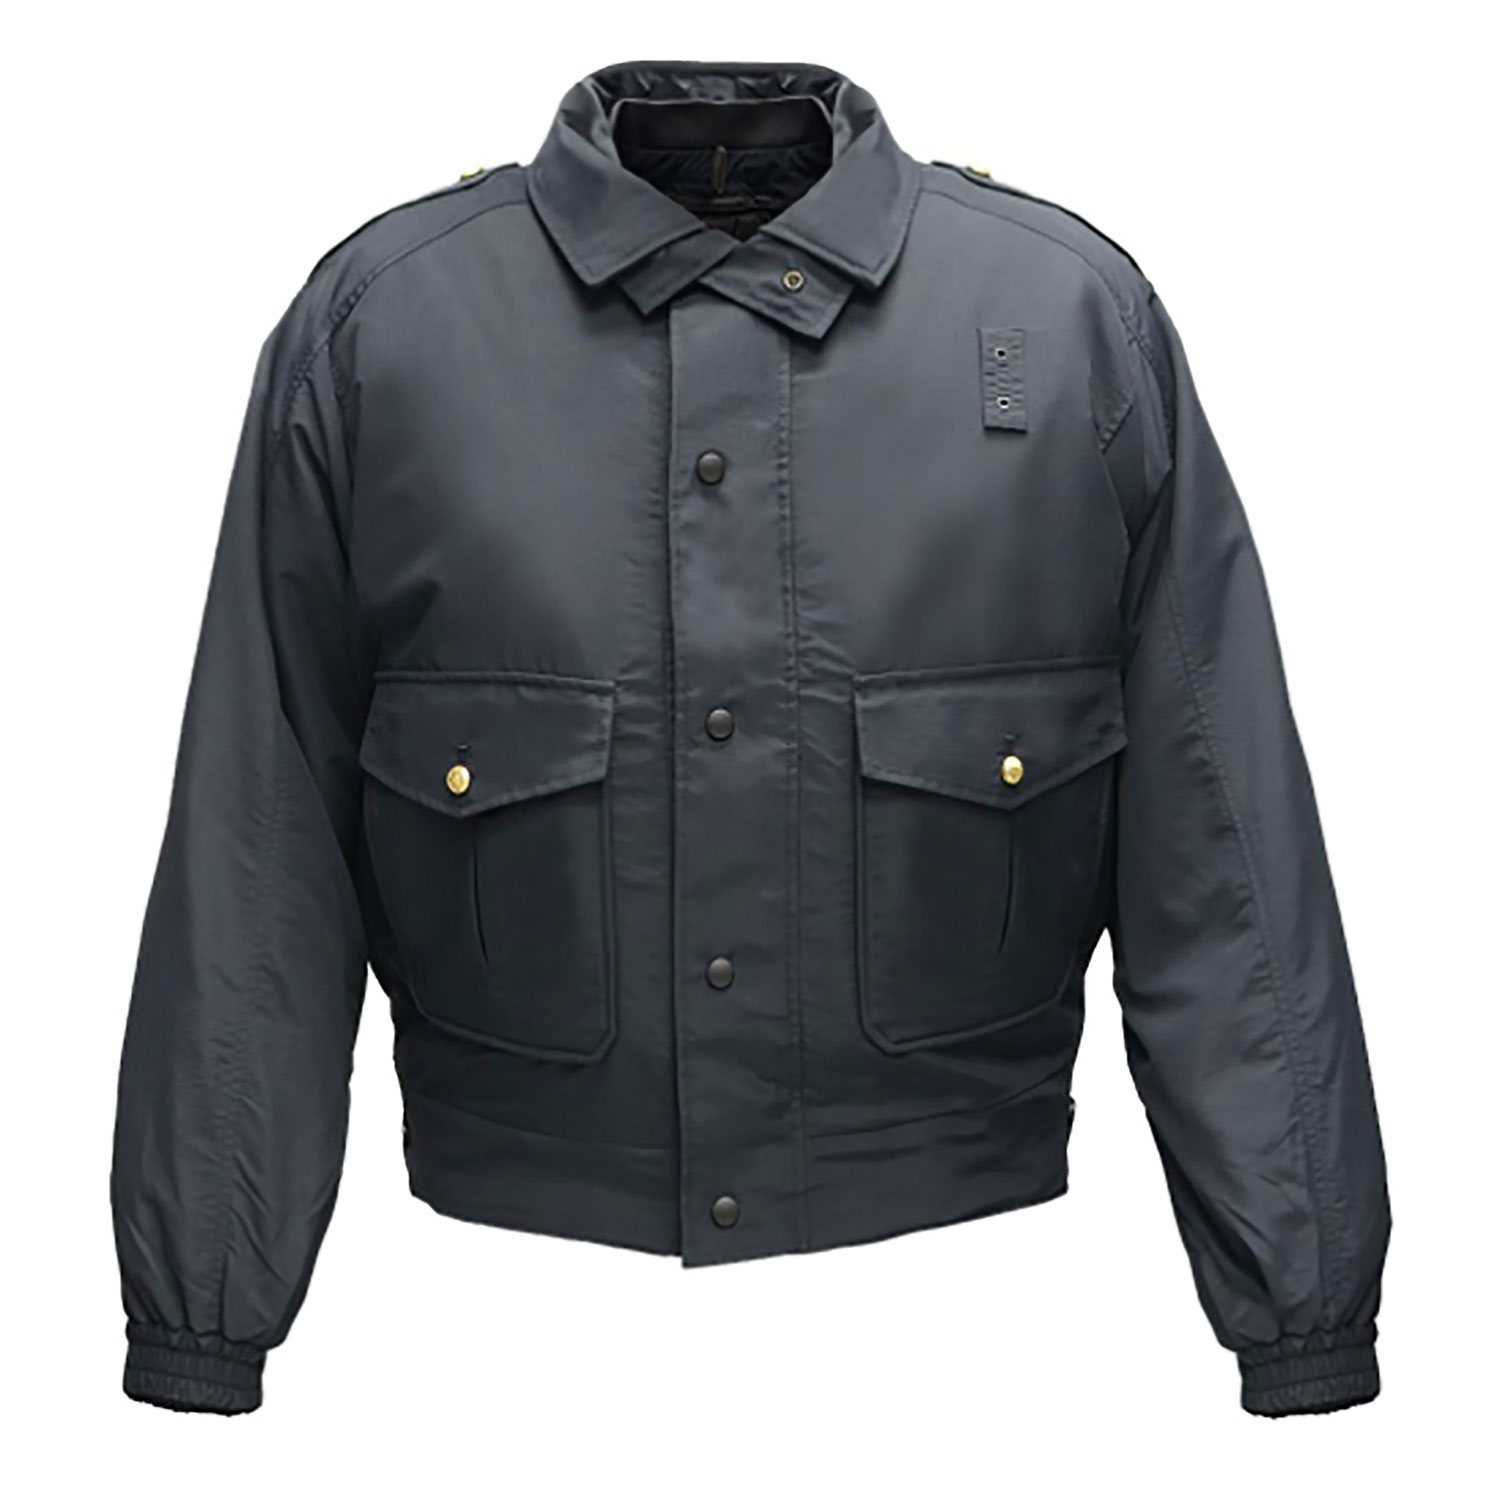 Fying Cross Spectrum Ultimate Jacket